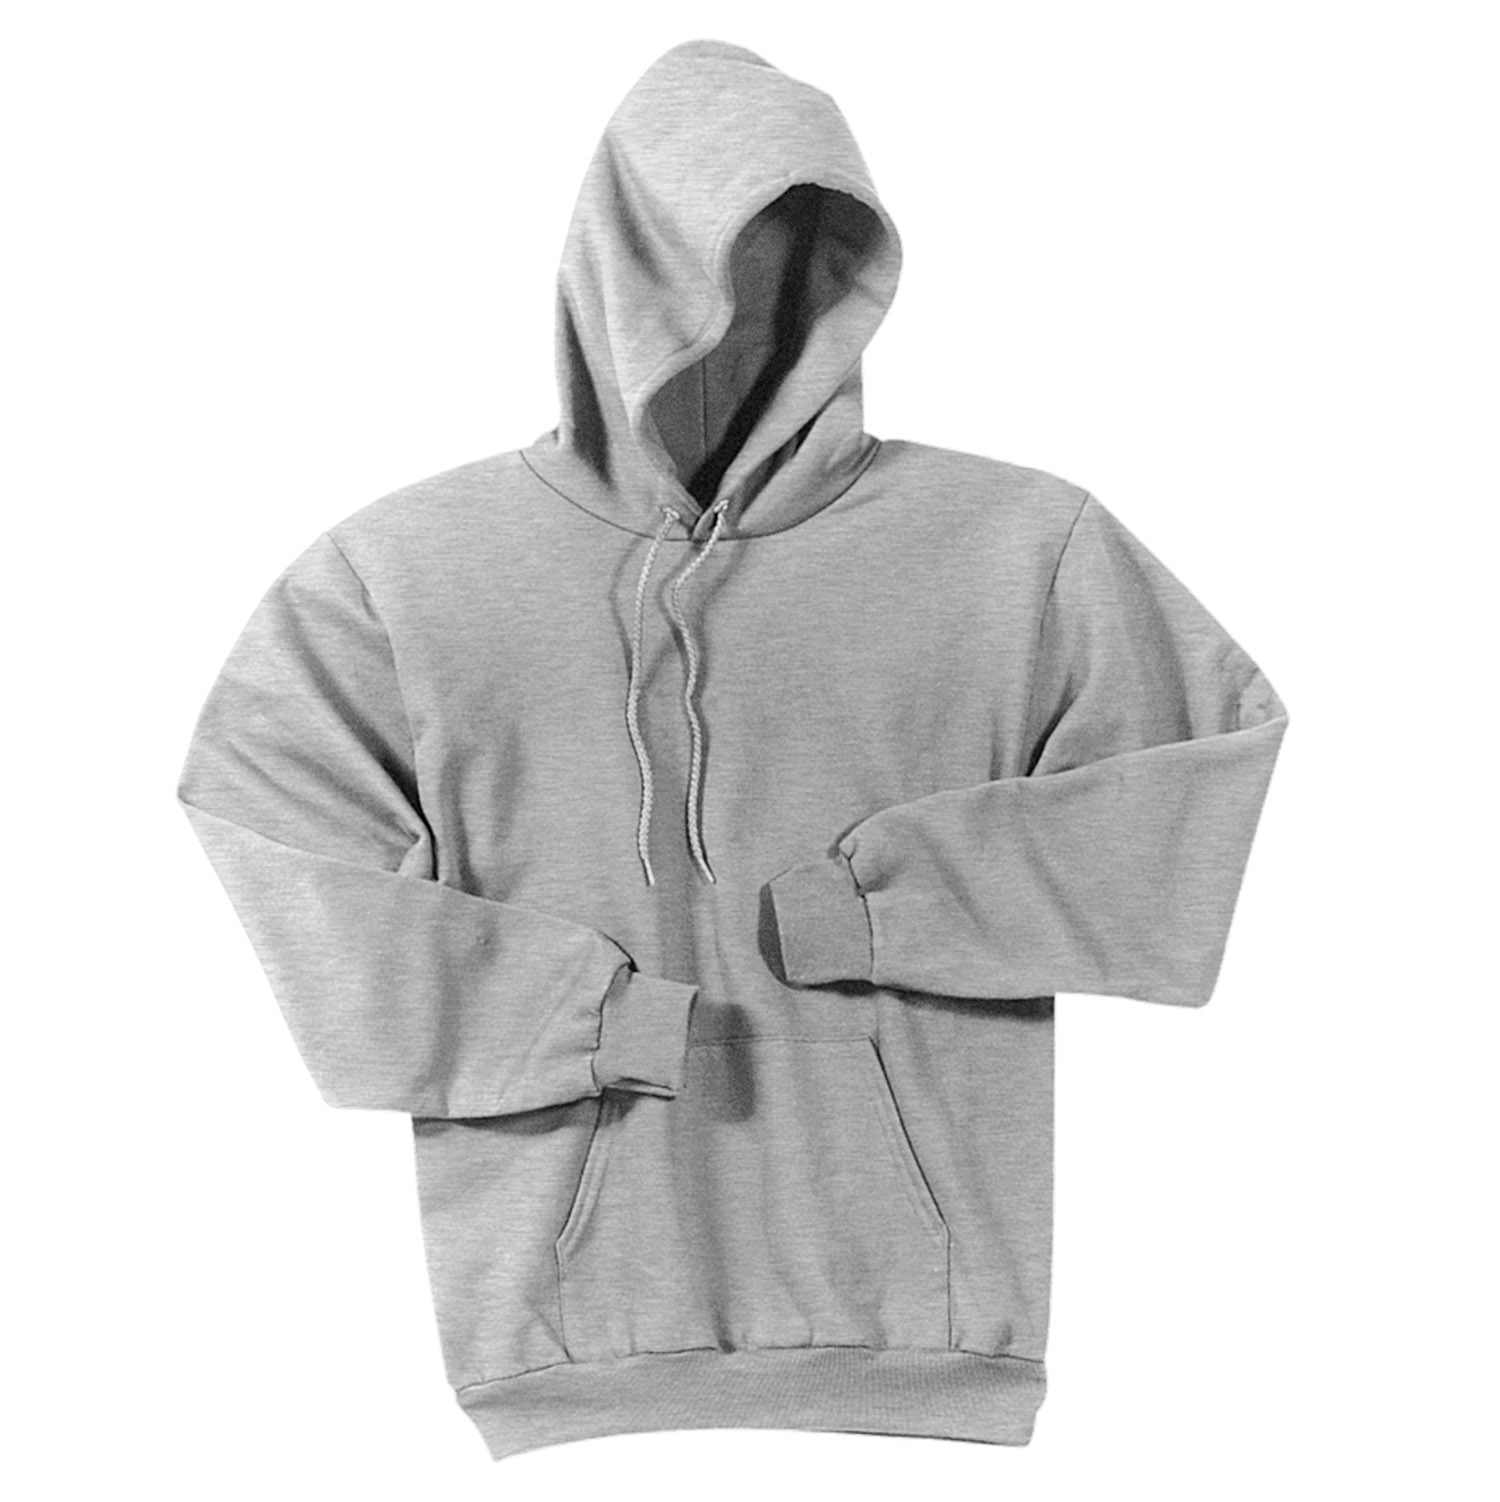 Port and Company Ultimate Pullover Hooded Sweatshirt